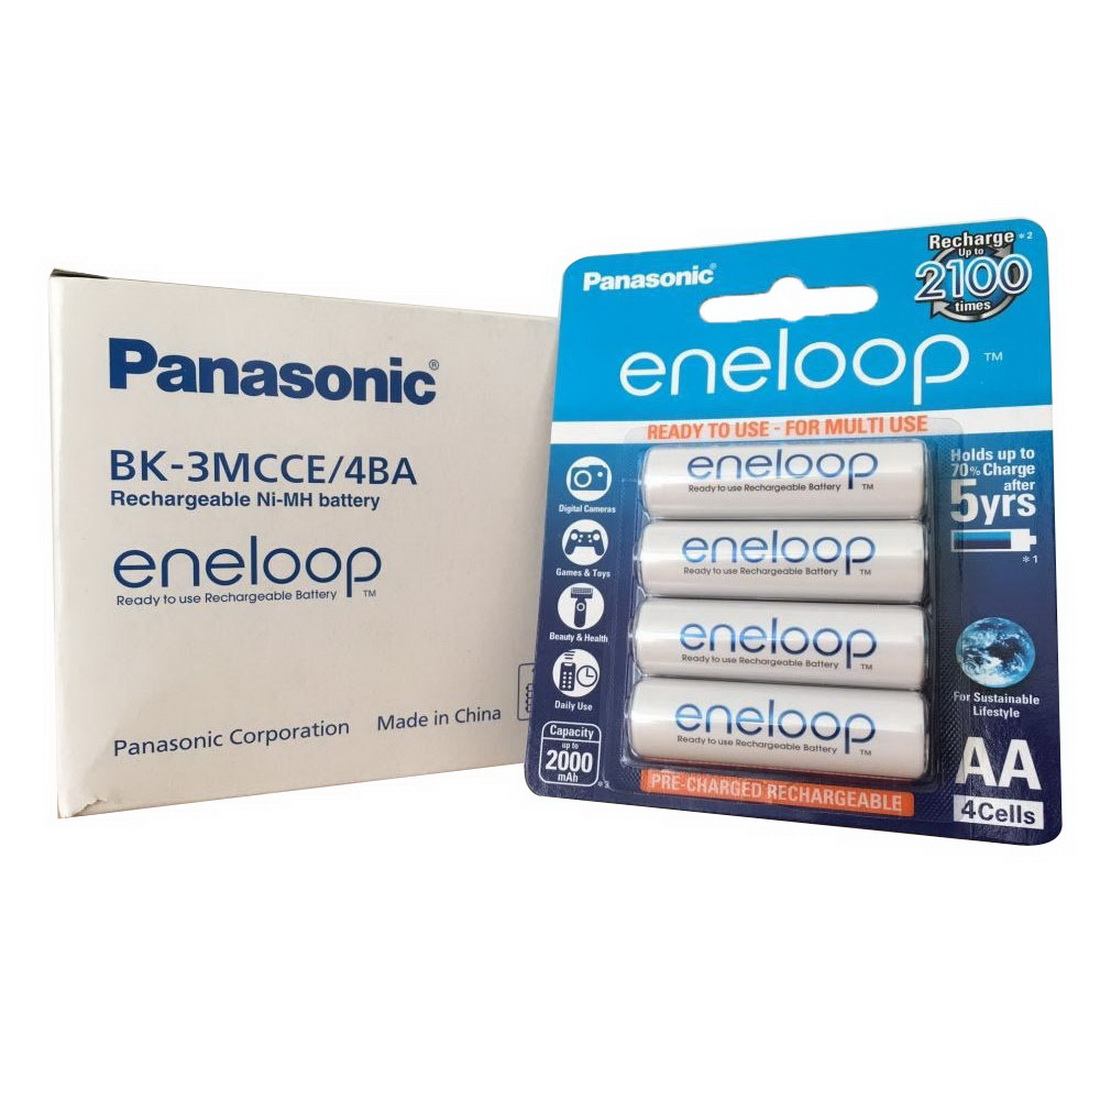 Eneloop 2000mAh AA Ready to use Rechargeable Battery 4 pack